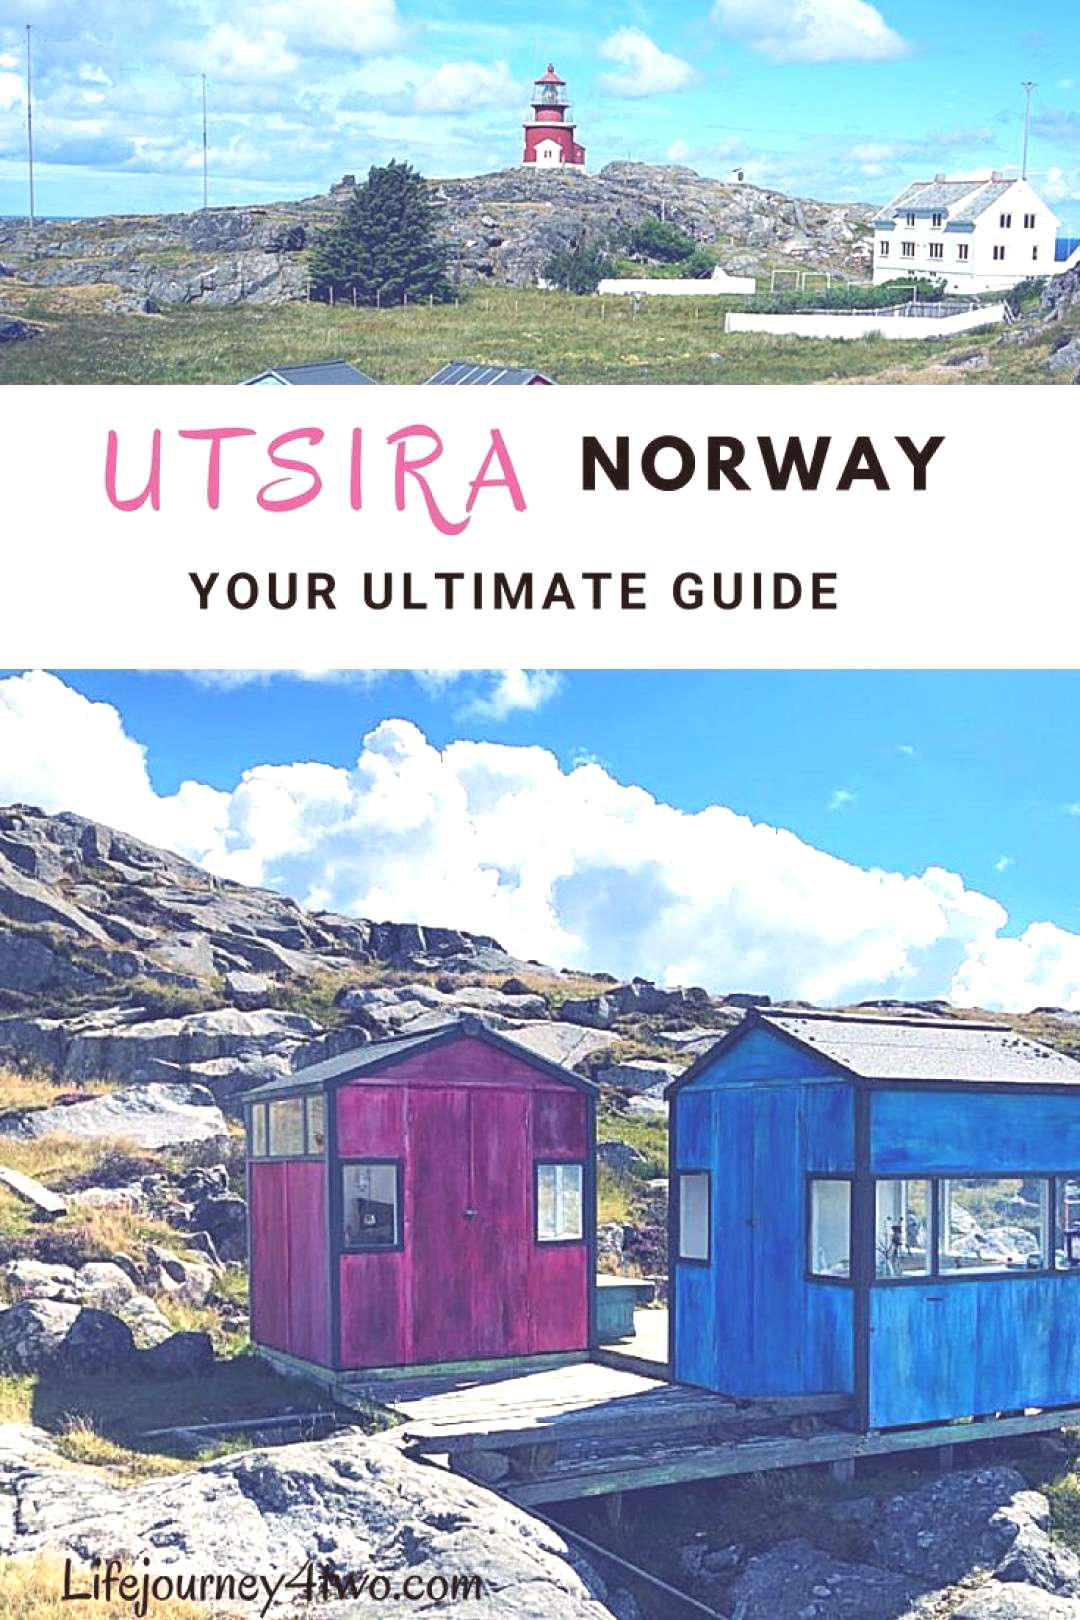 Utsira Norway The Ultimate Guide - Lifejourney4two The ultimate guide to this dream destination, U